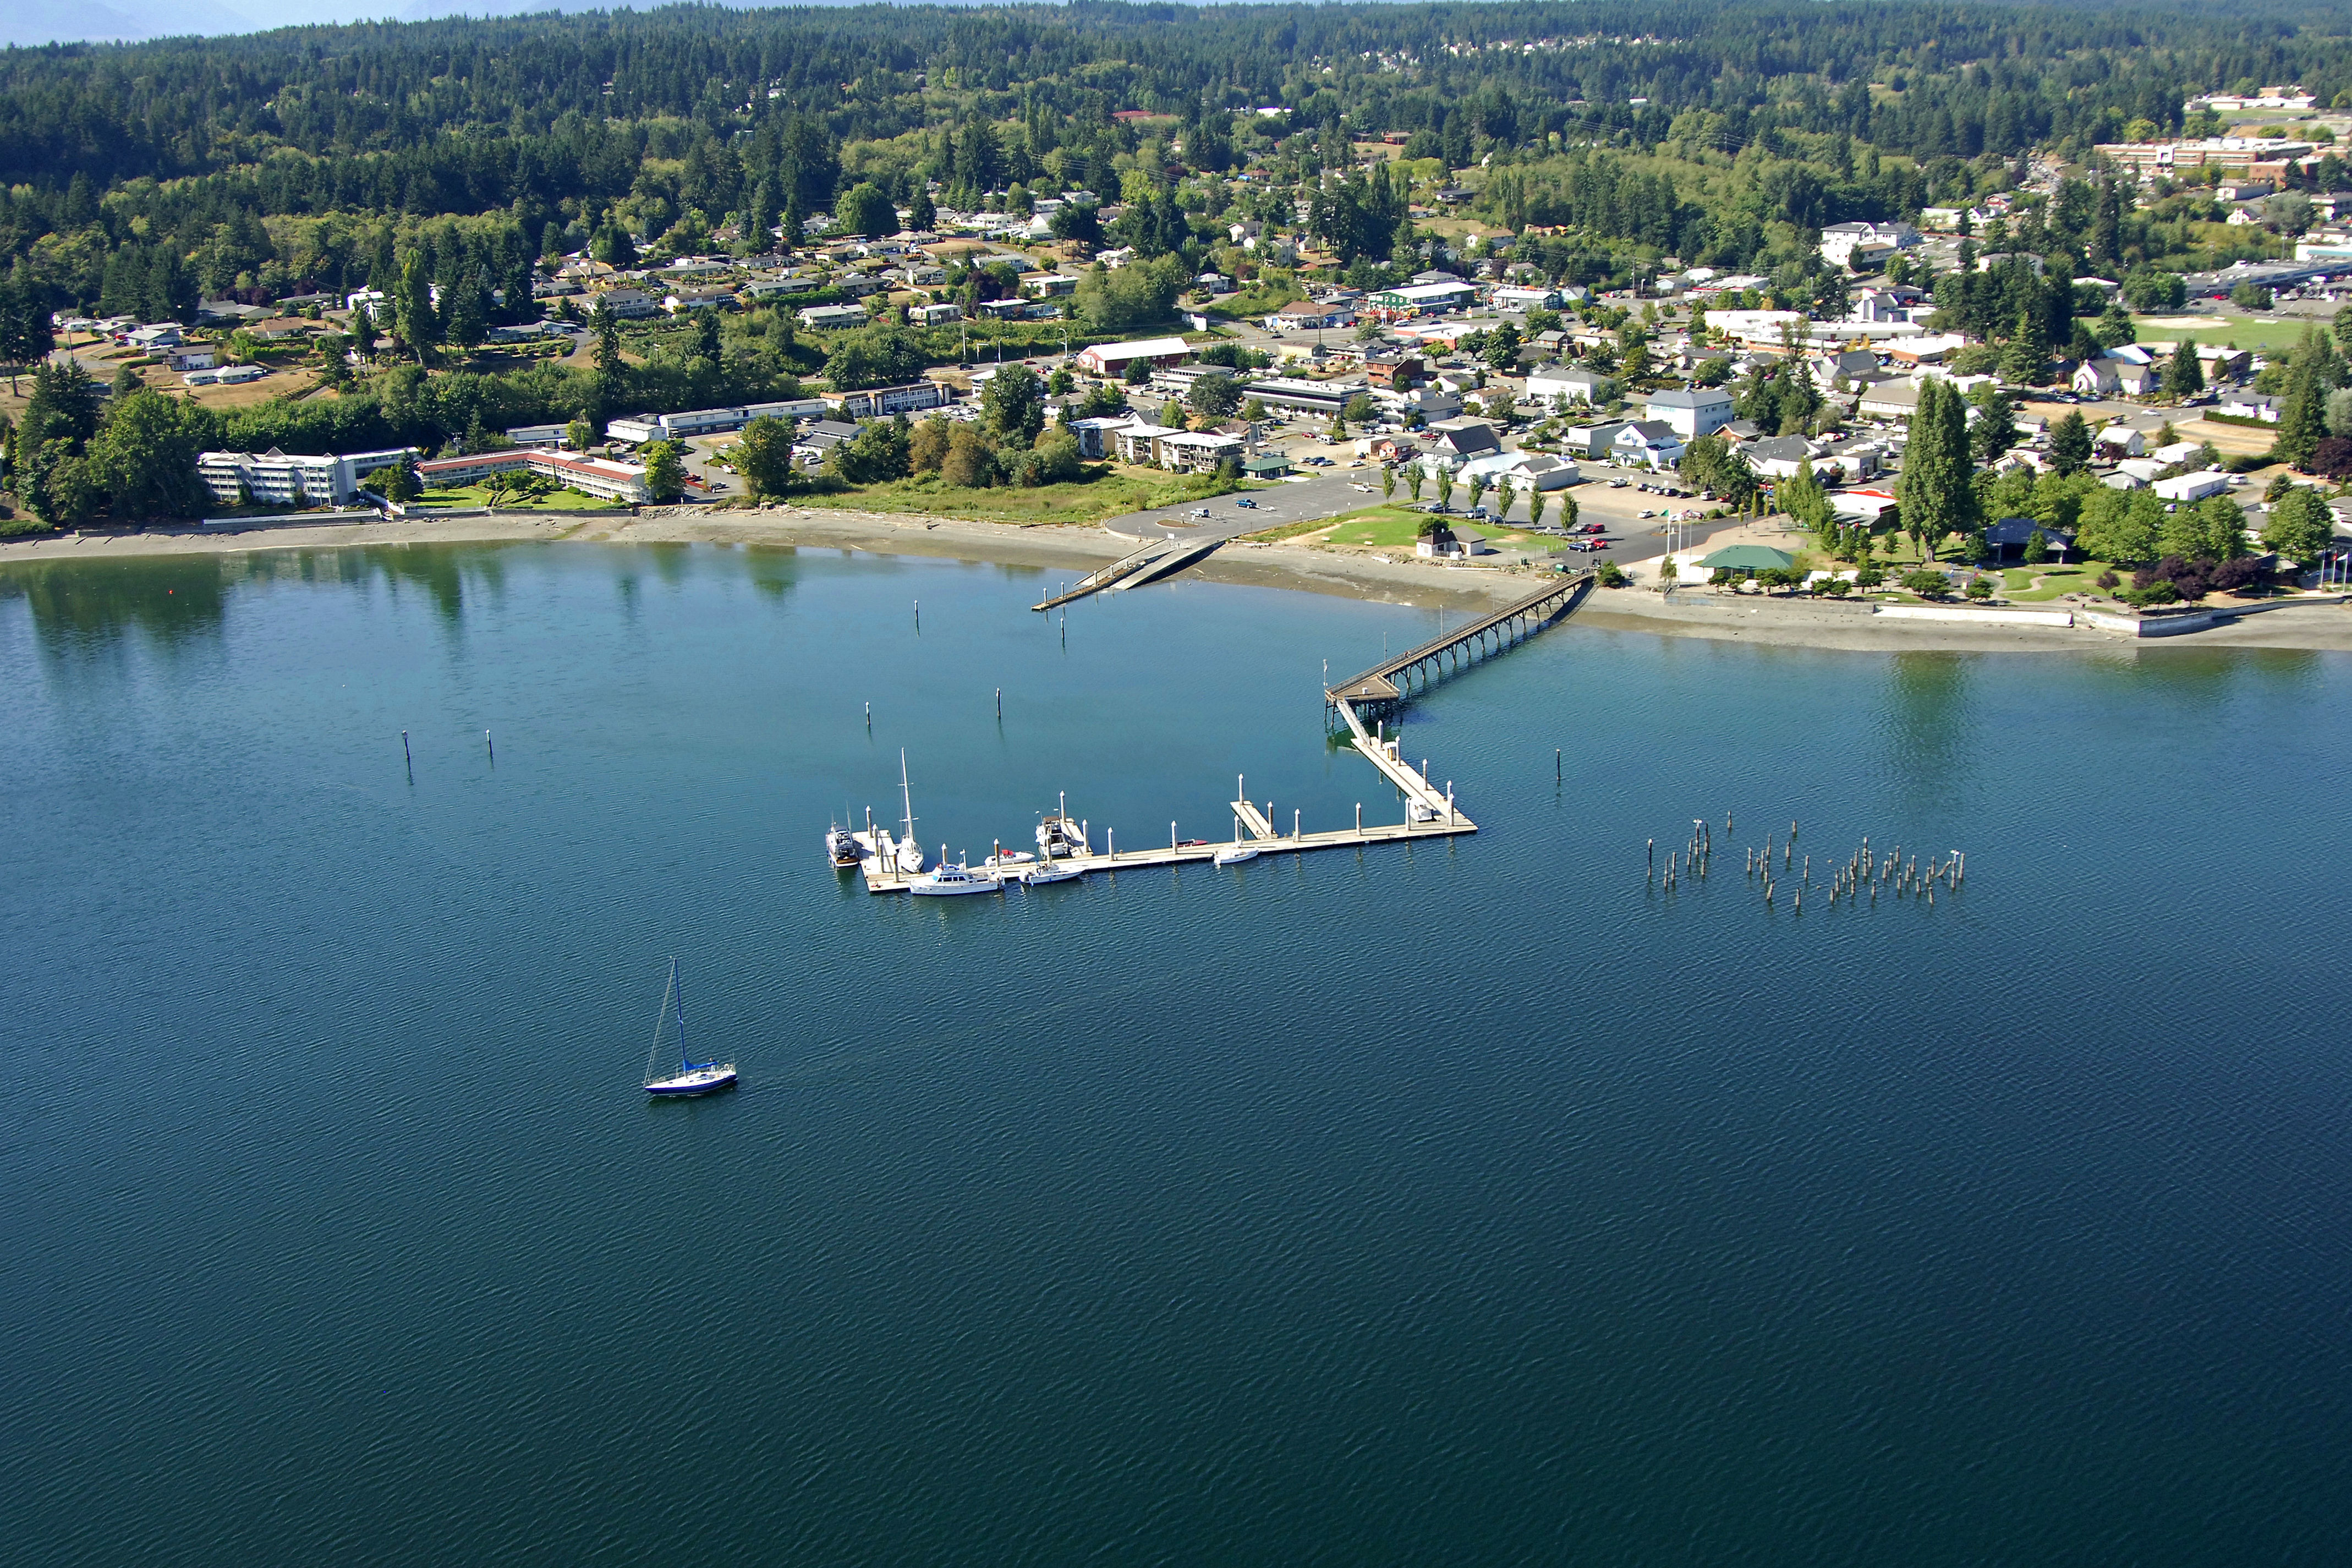 Port Of Silverdale In Silverdale Wa United States